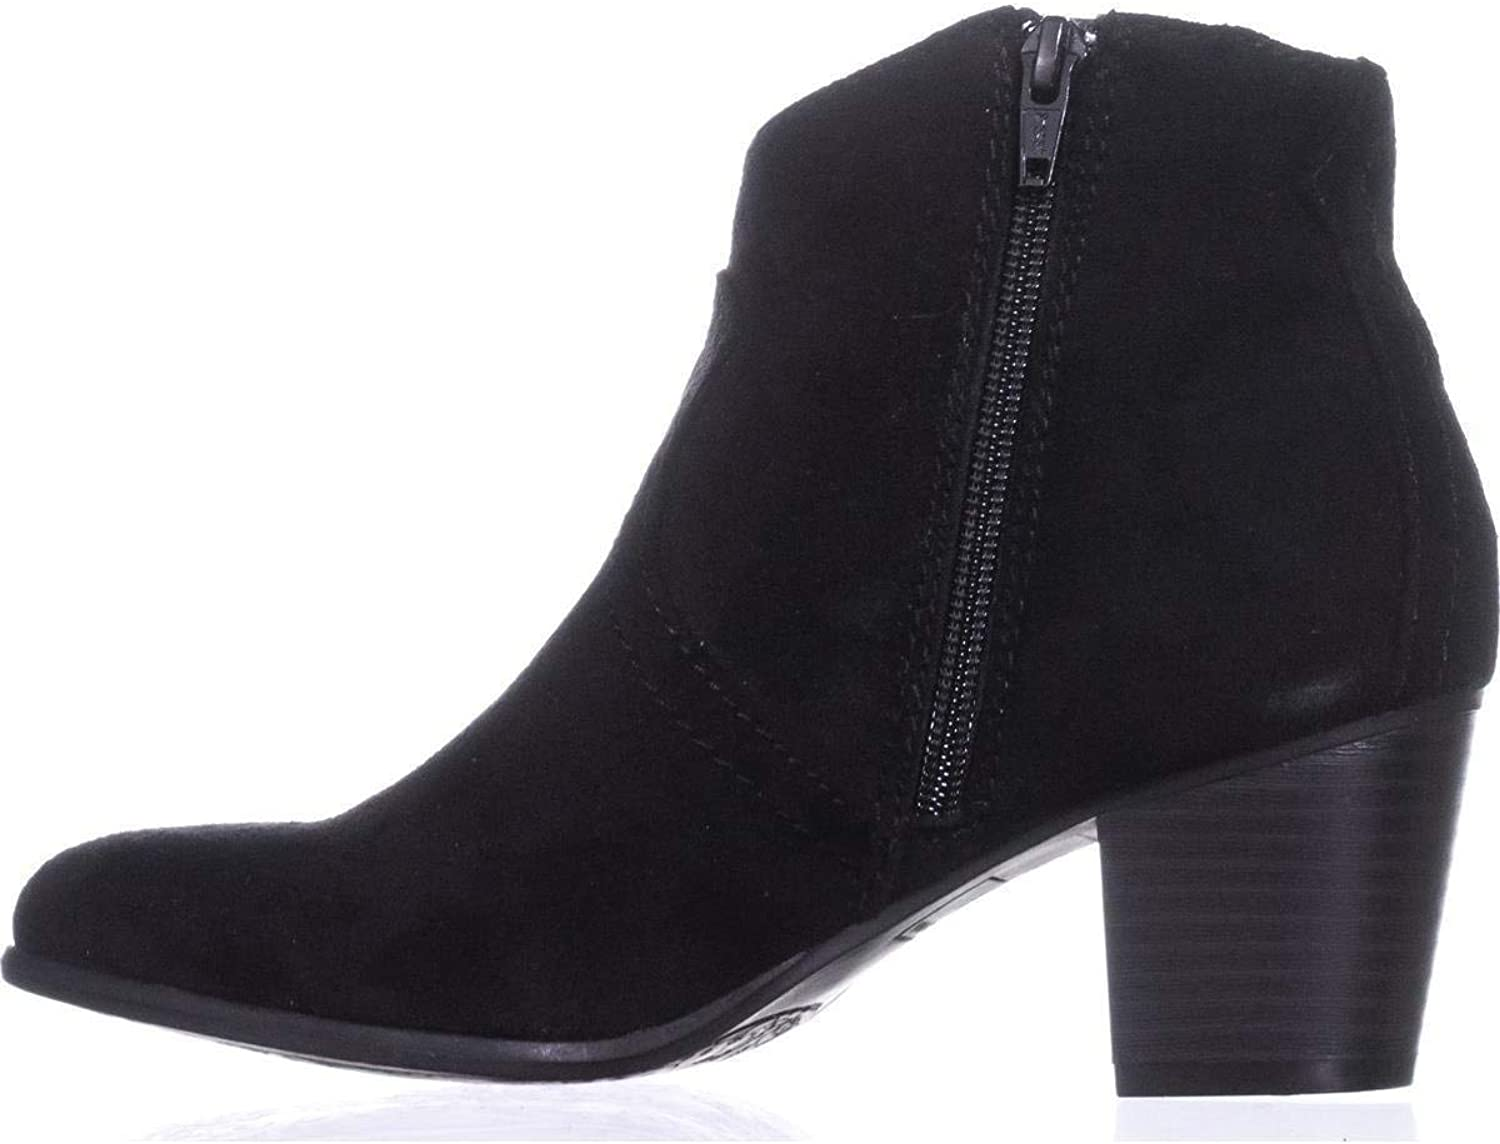 American Rag Womens Rylie Almond Toe Ankle Fashion Boots, Black, Size 8.0